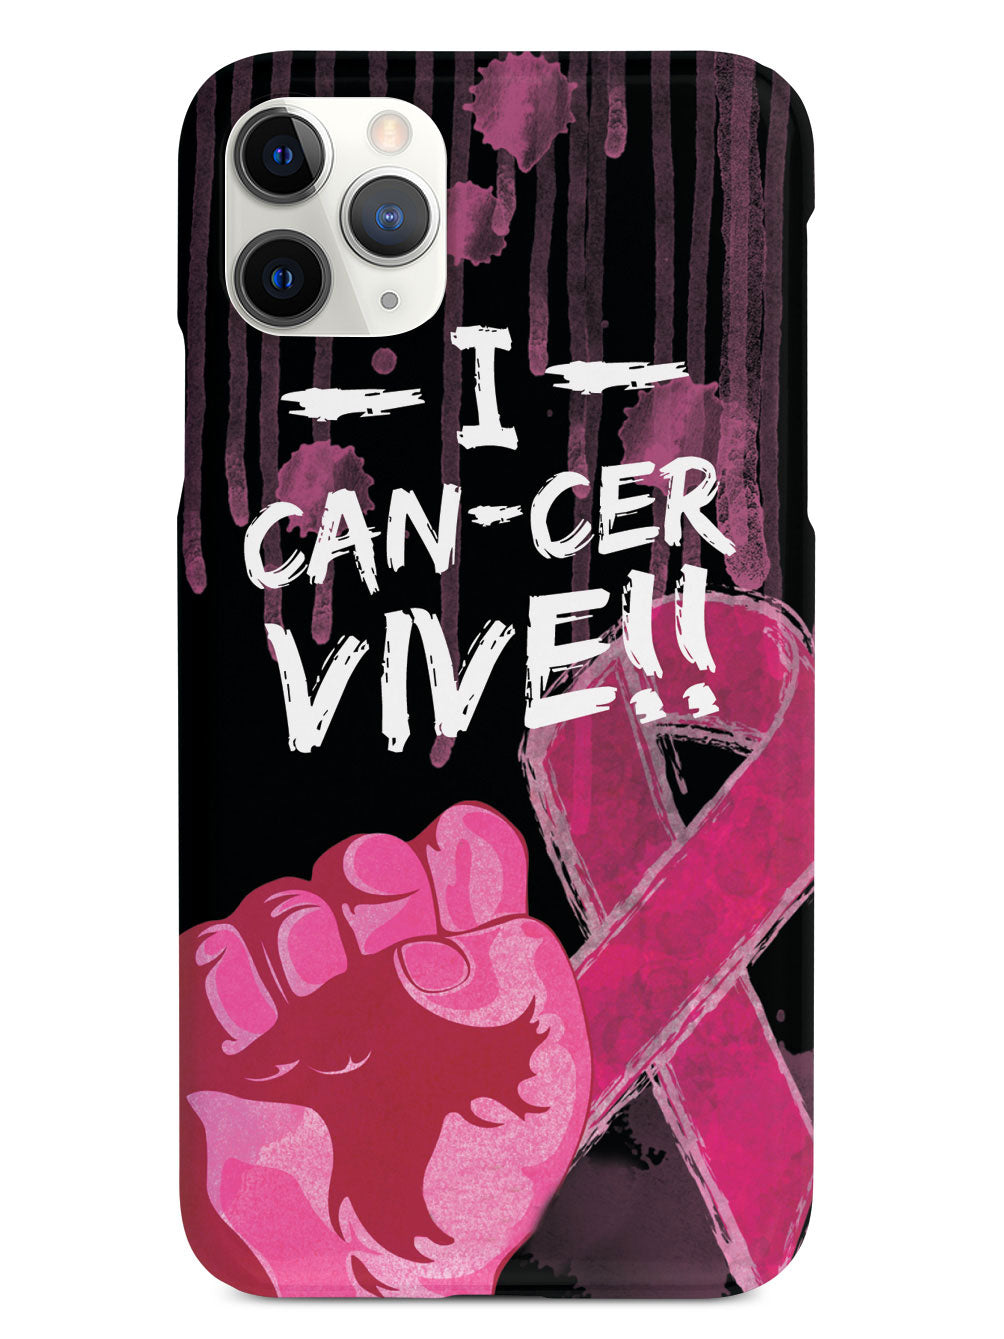 I Can-Cer Vive! Cancer Case